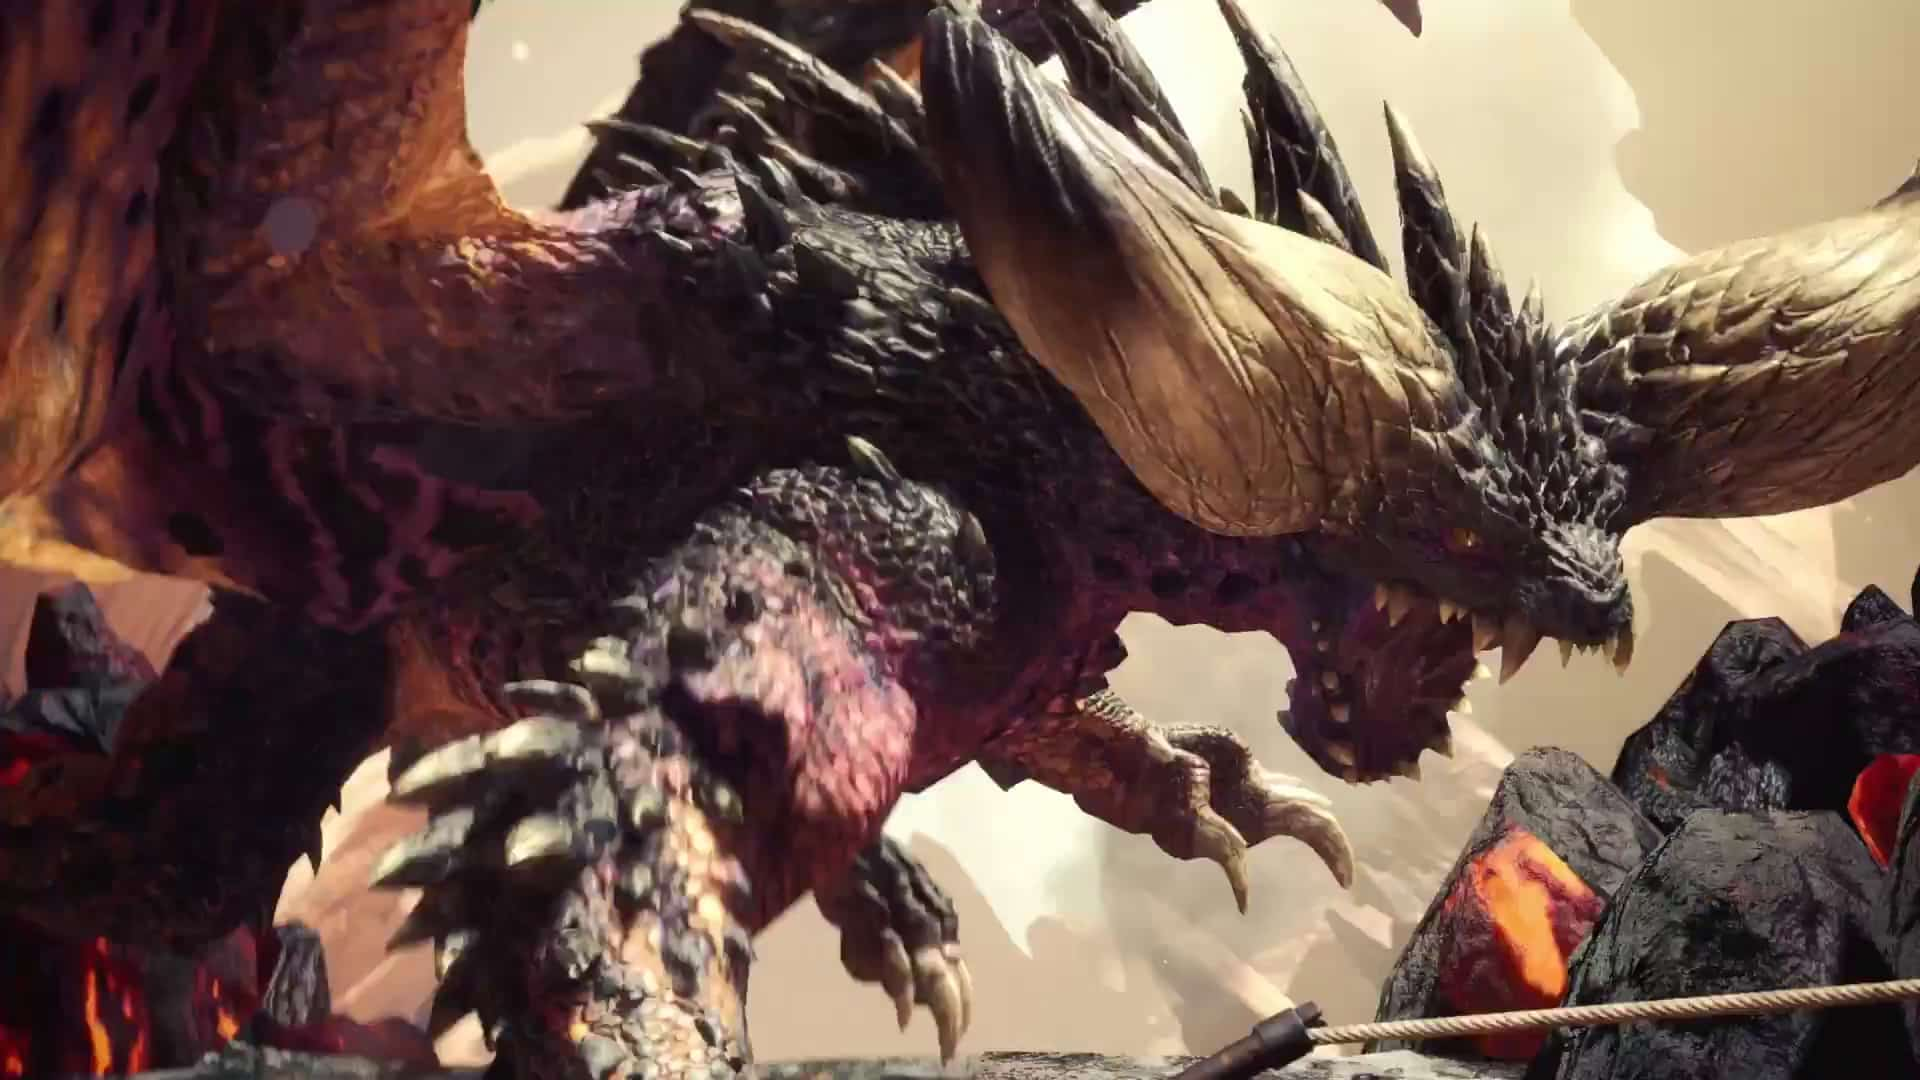 Monster Hunter: World ships 5 million units, Capcom announces real